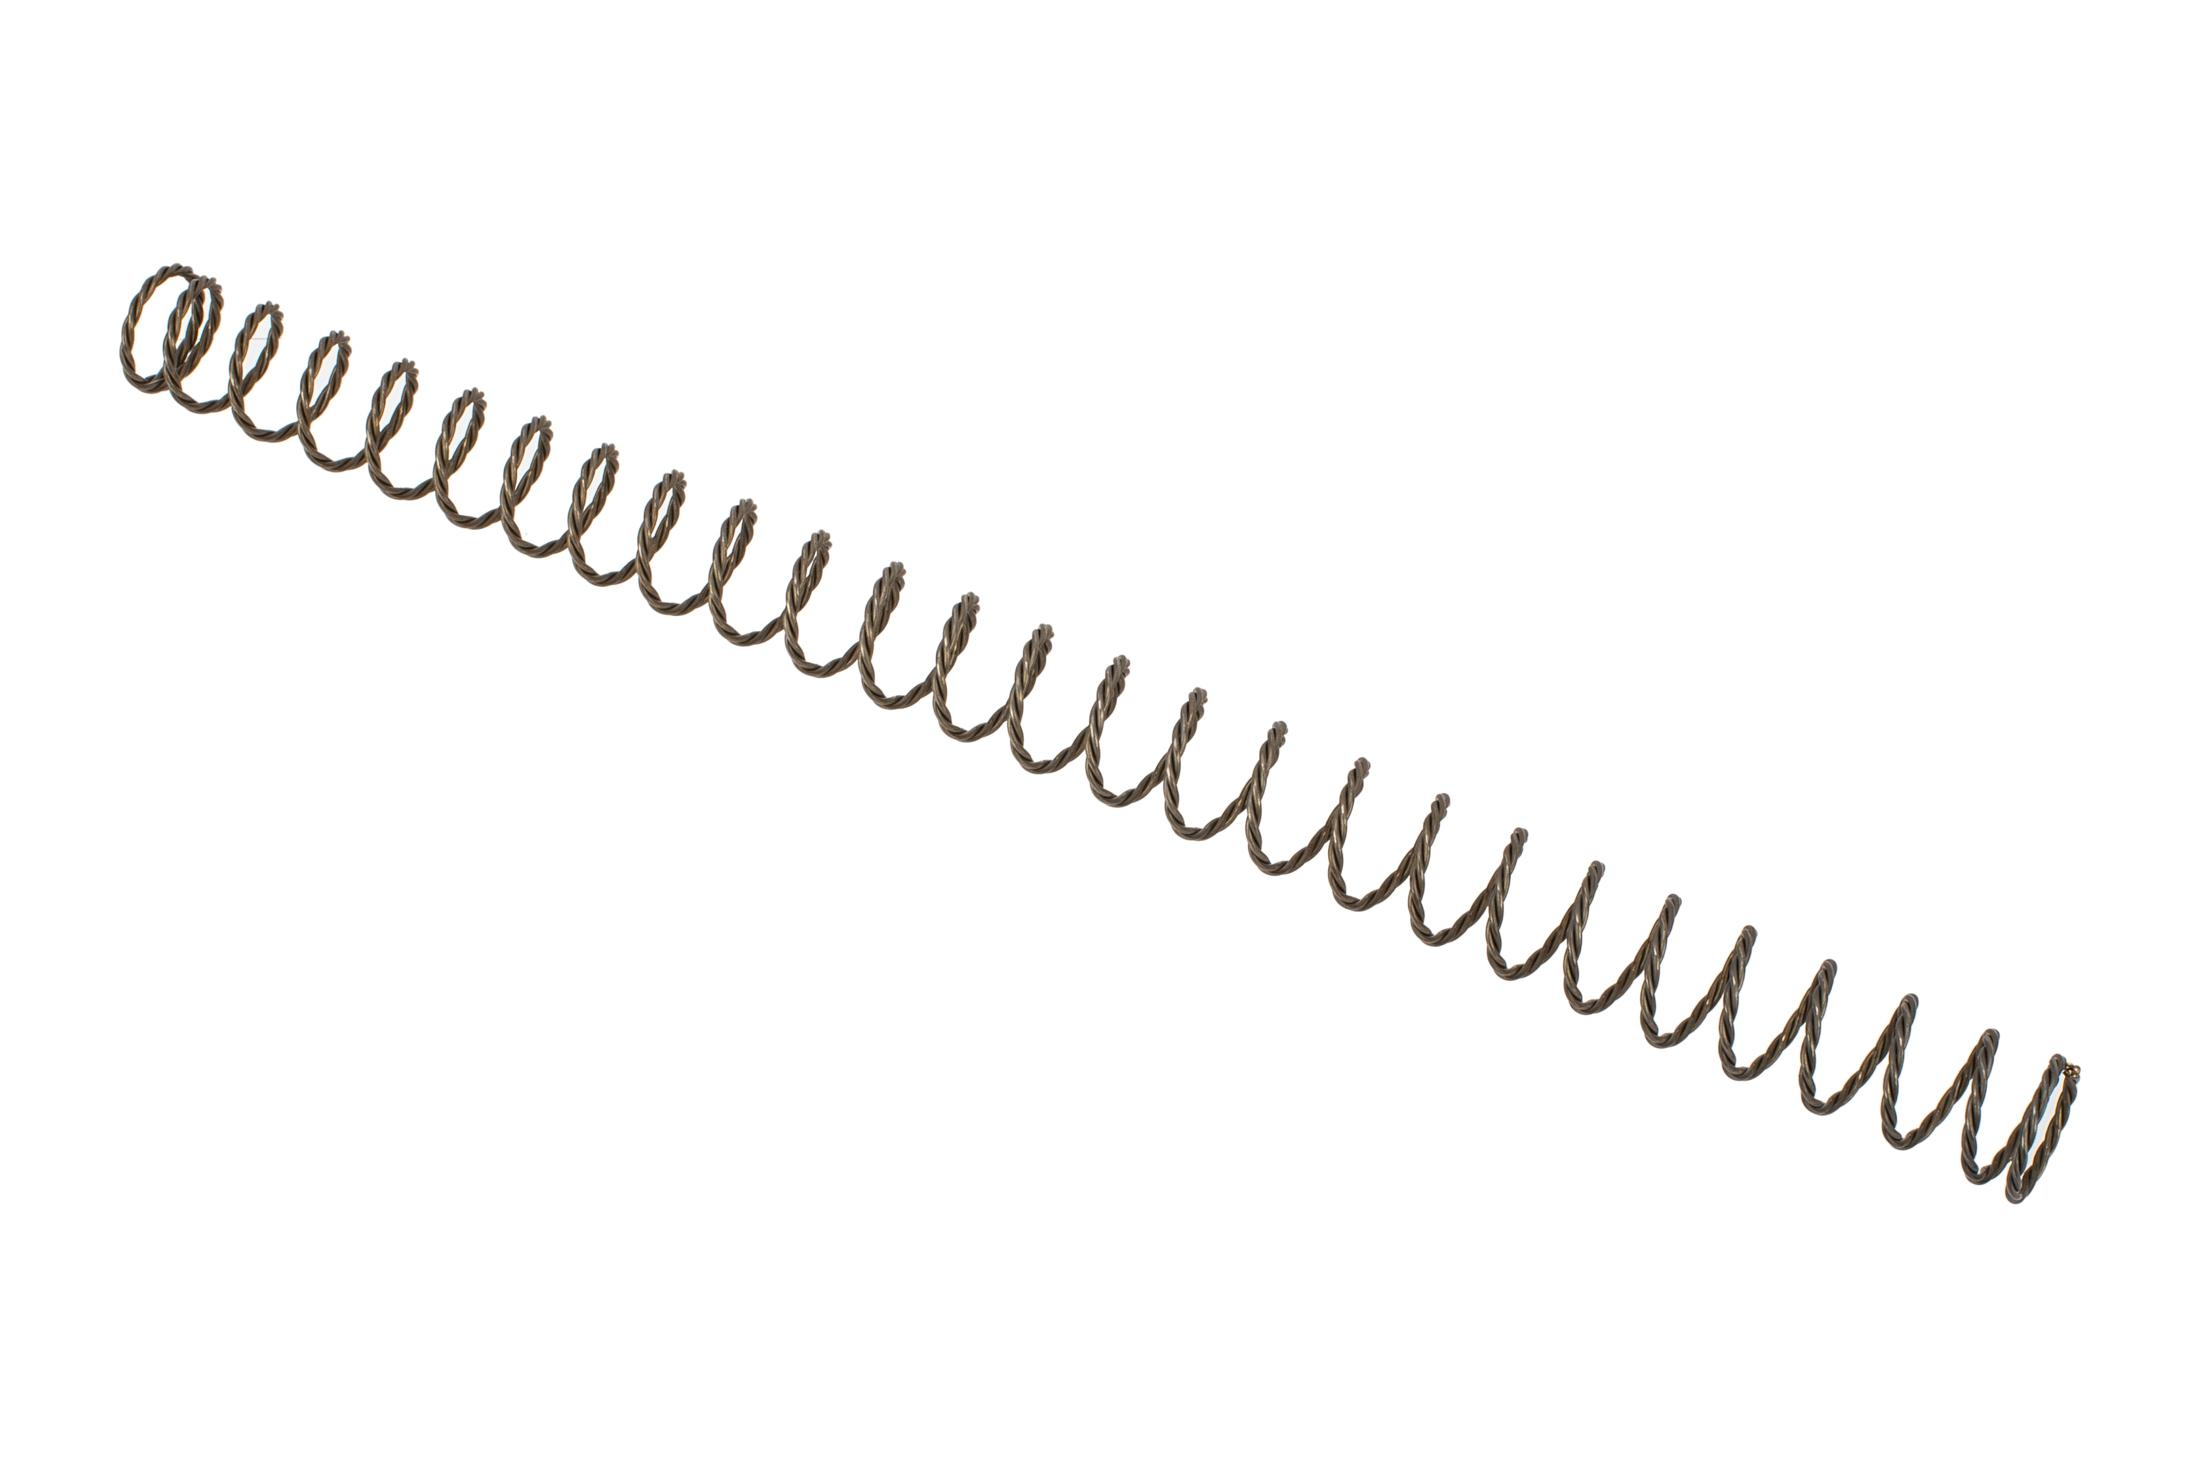 Geissele Automatics Super 42 rifle buffer spring features triple-braided wire for enhanced damping and service life.